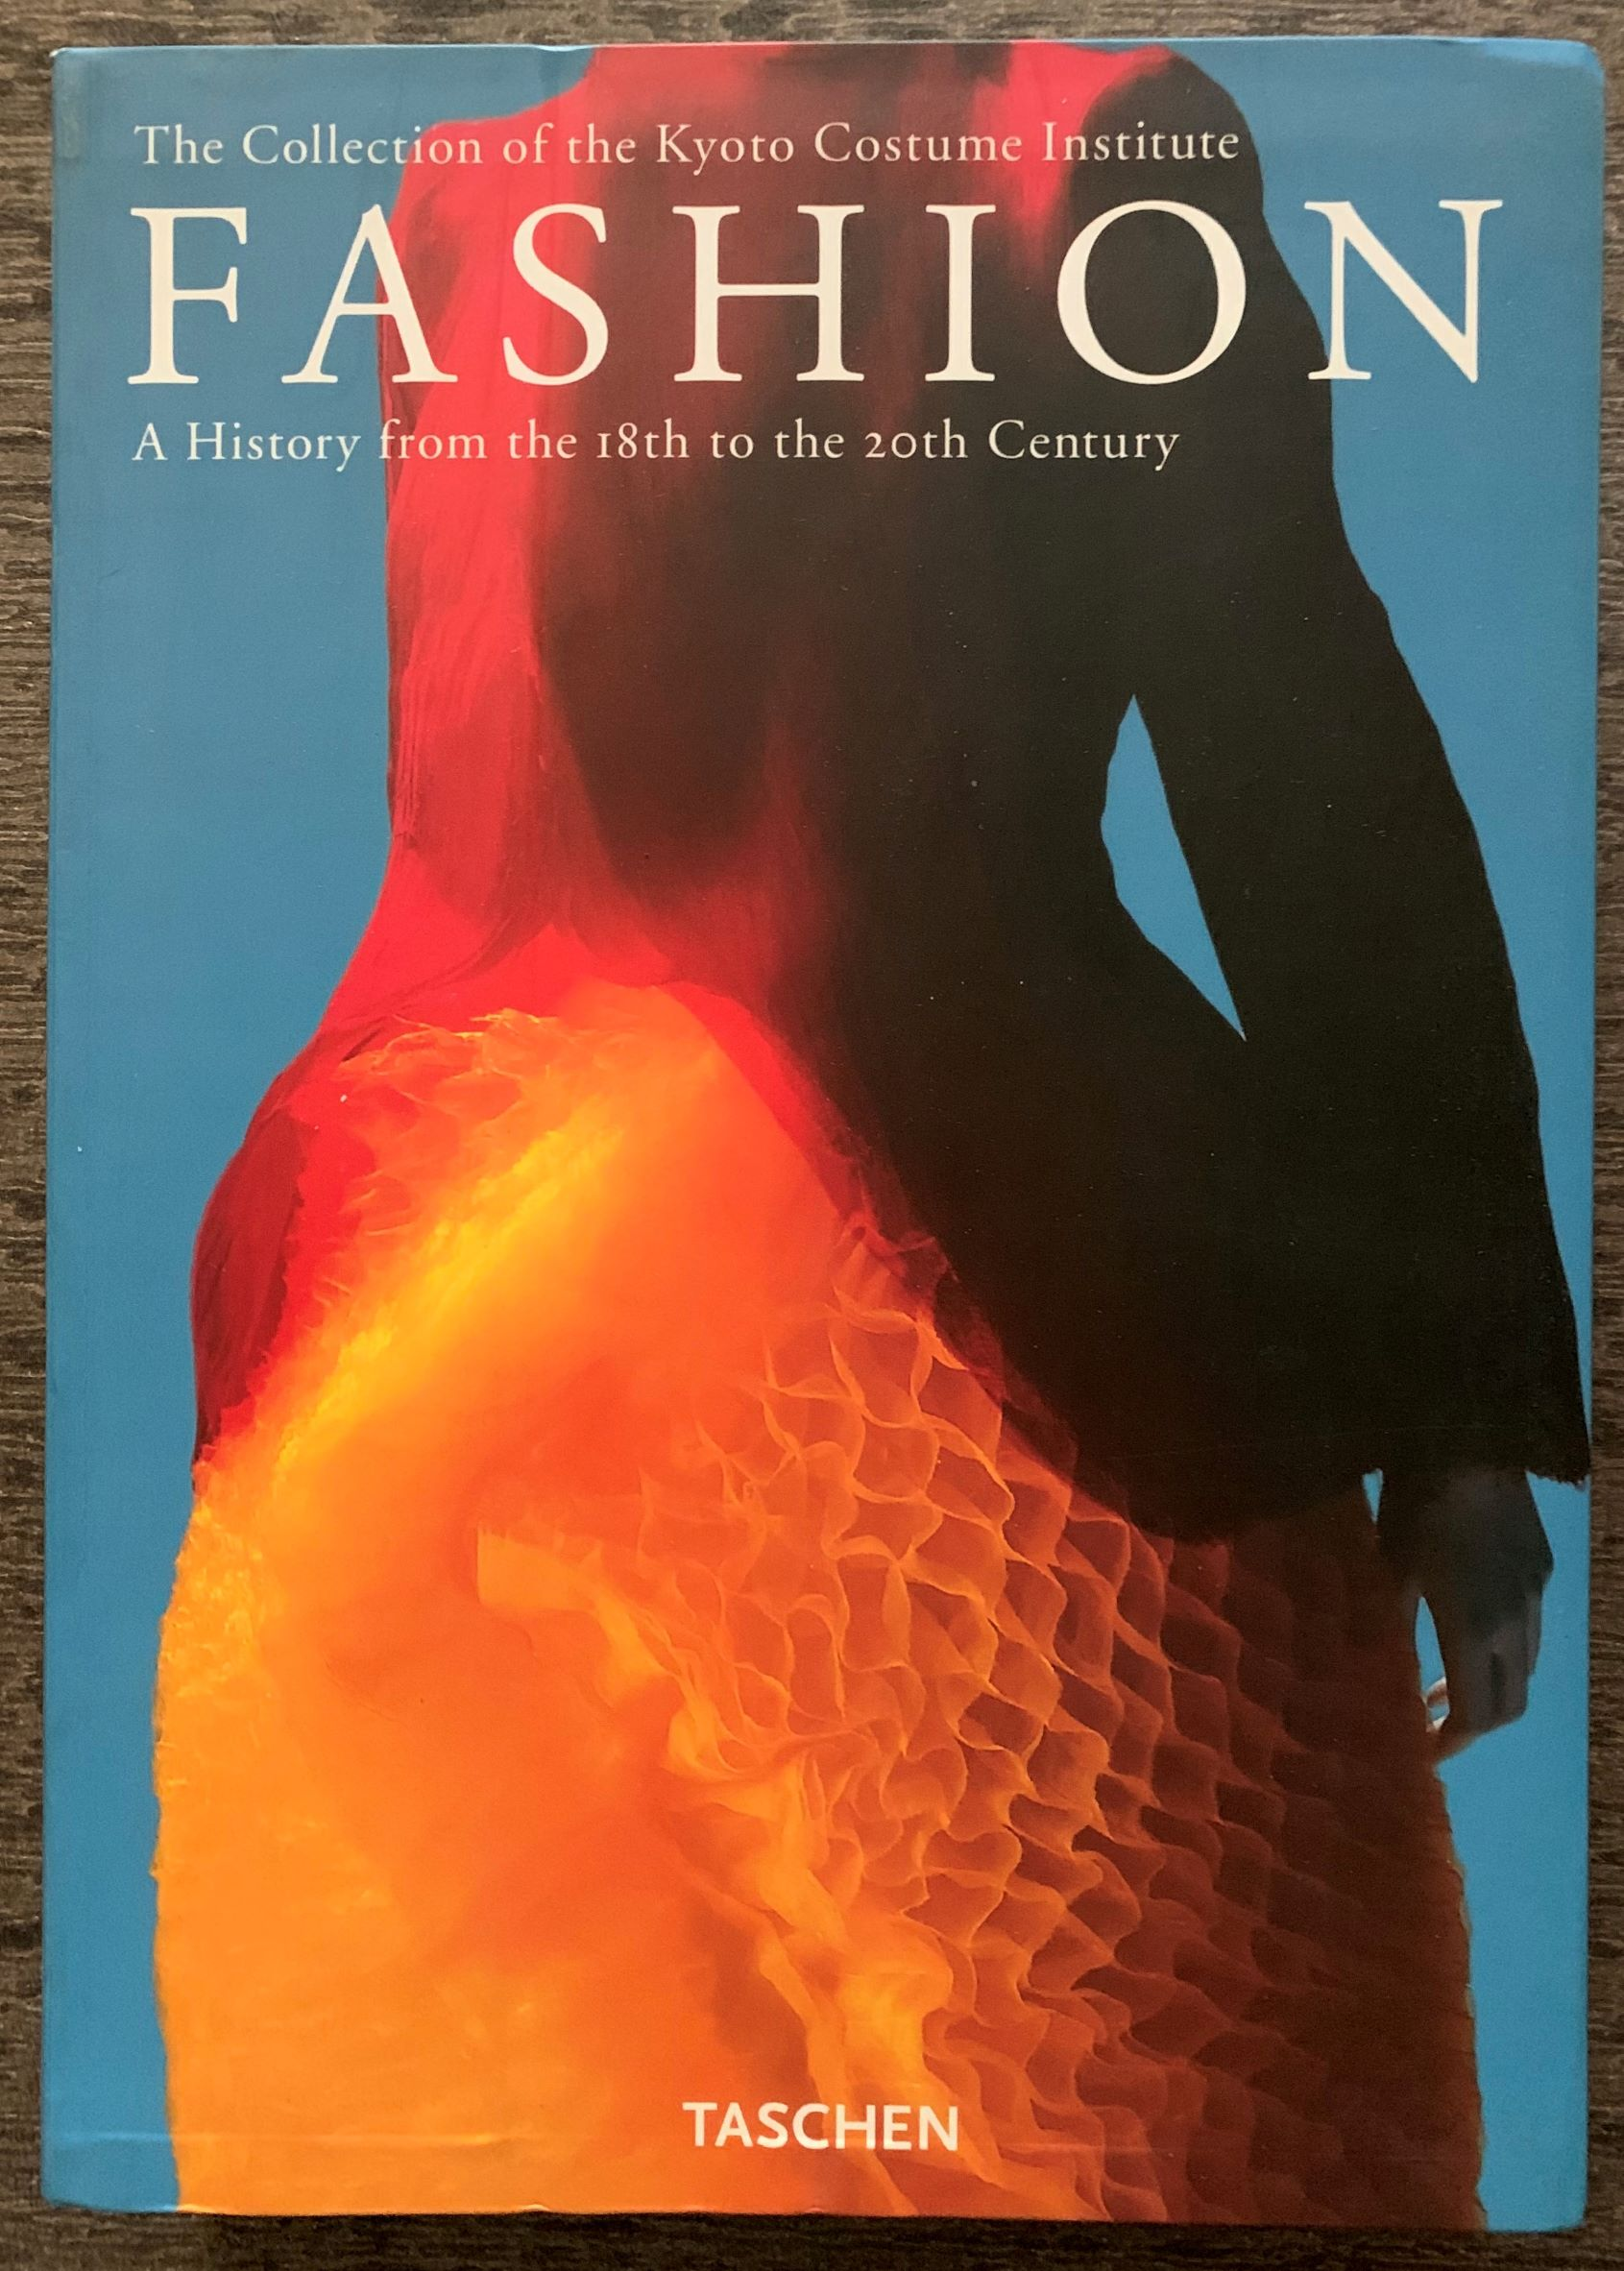 Image for The Collection of the Kyoto Costume Institute: Fashion - A History from the 18th to the 20th Century.